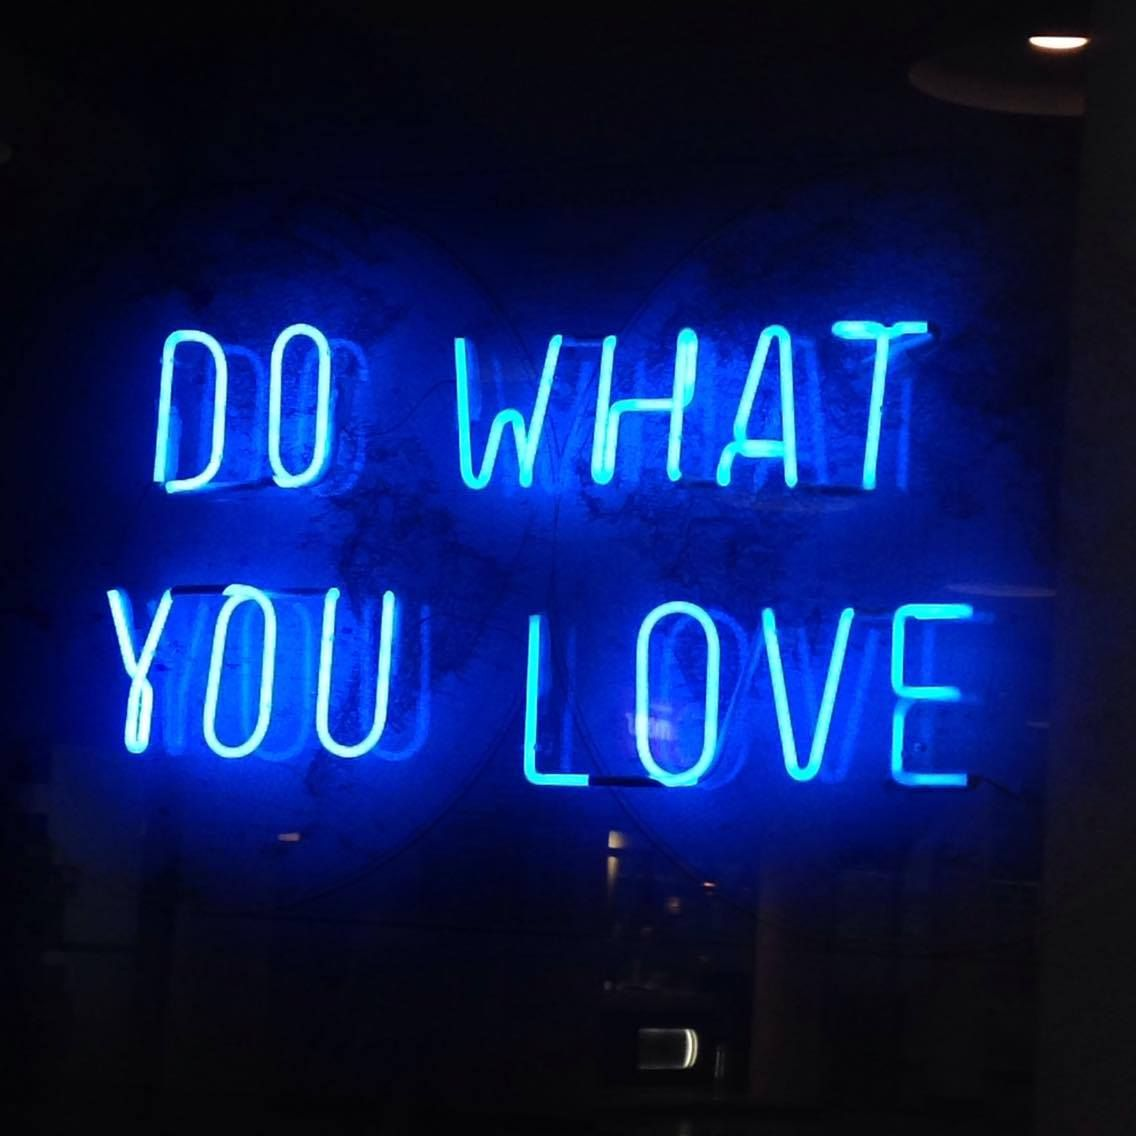 Do What You Love Neon Neon Signs Neon Quotes Neon Check out this fantastic collection of neon wallpapers, with 59 neon background images for your desktop, phone or tablet. neon signs neon quotes neon